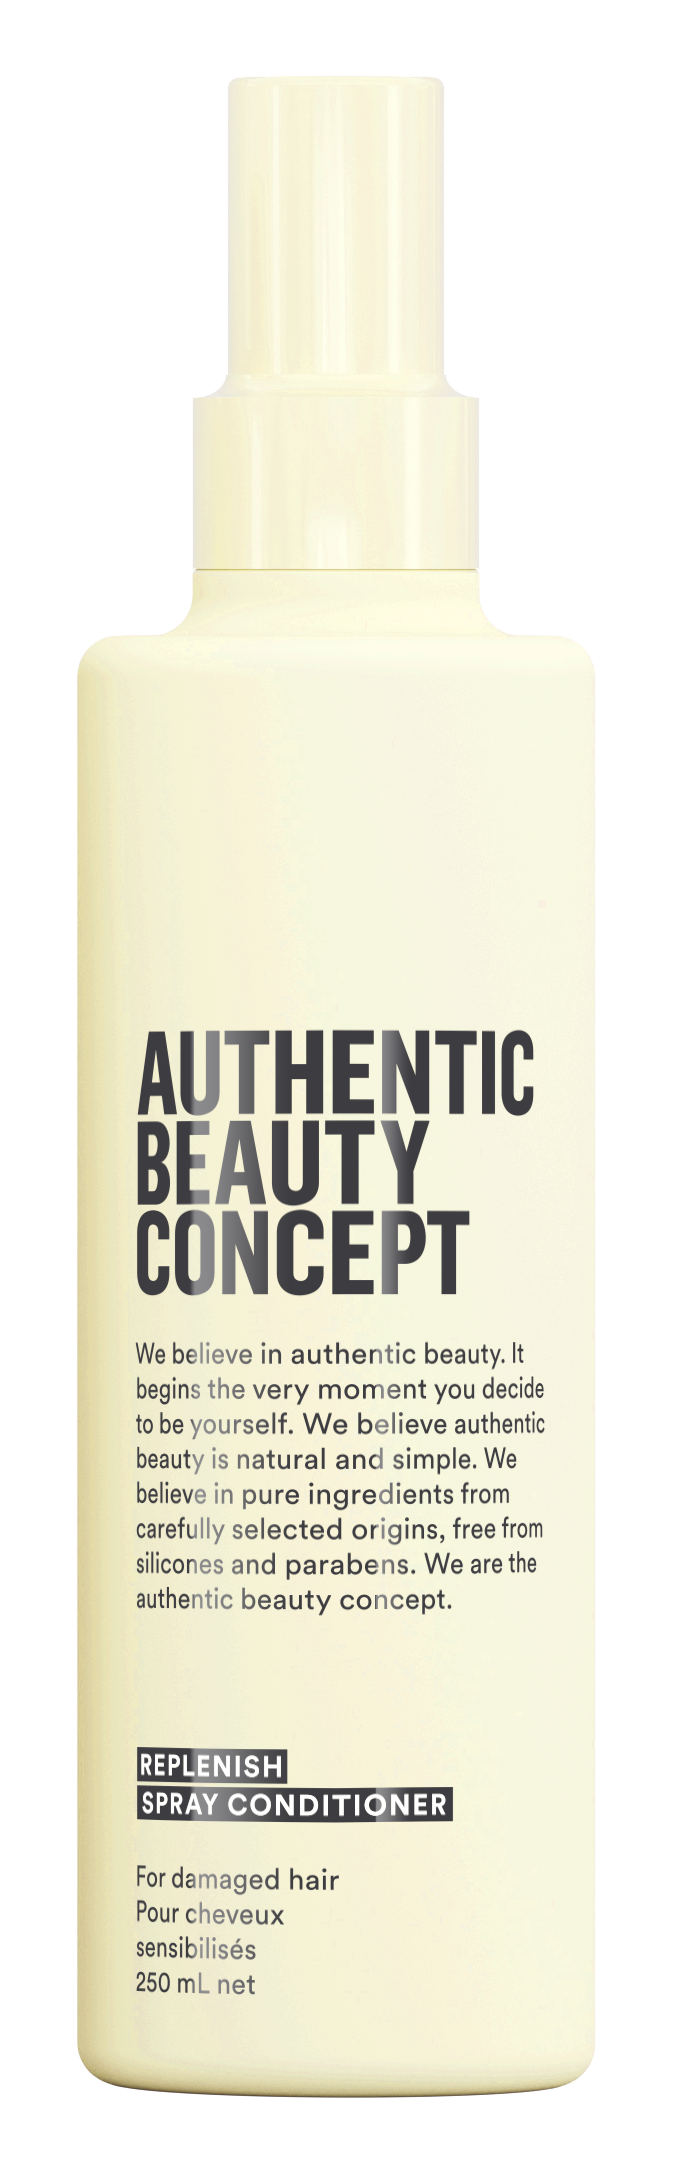 Eds Hair - Authentic Beauty Concept - Replenish Spray Conditioner 250ml